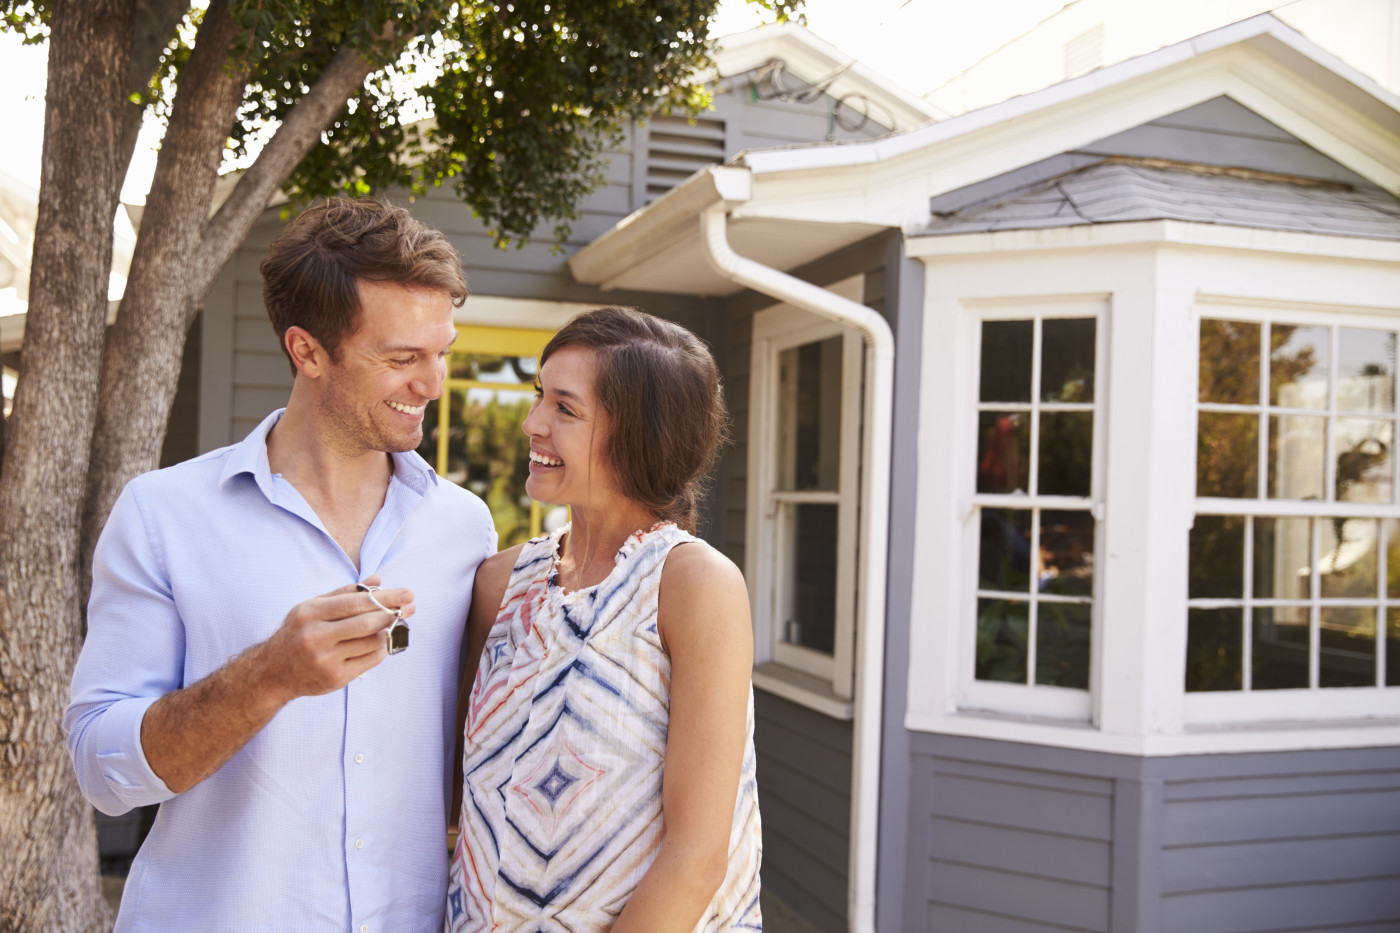 couple smiling with new house keys in hand